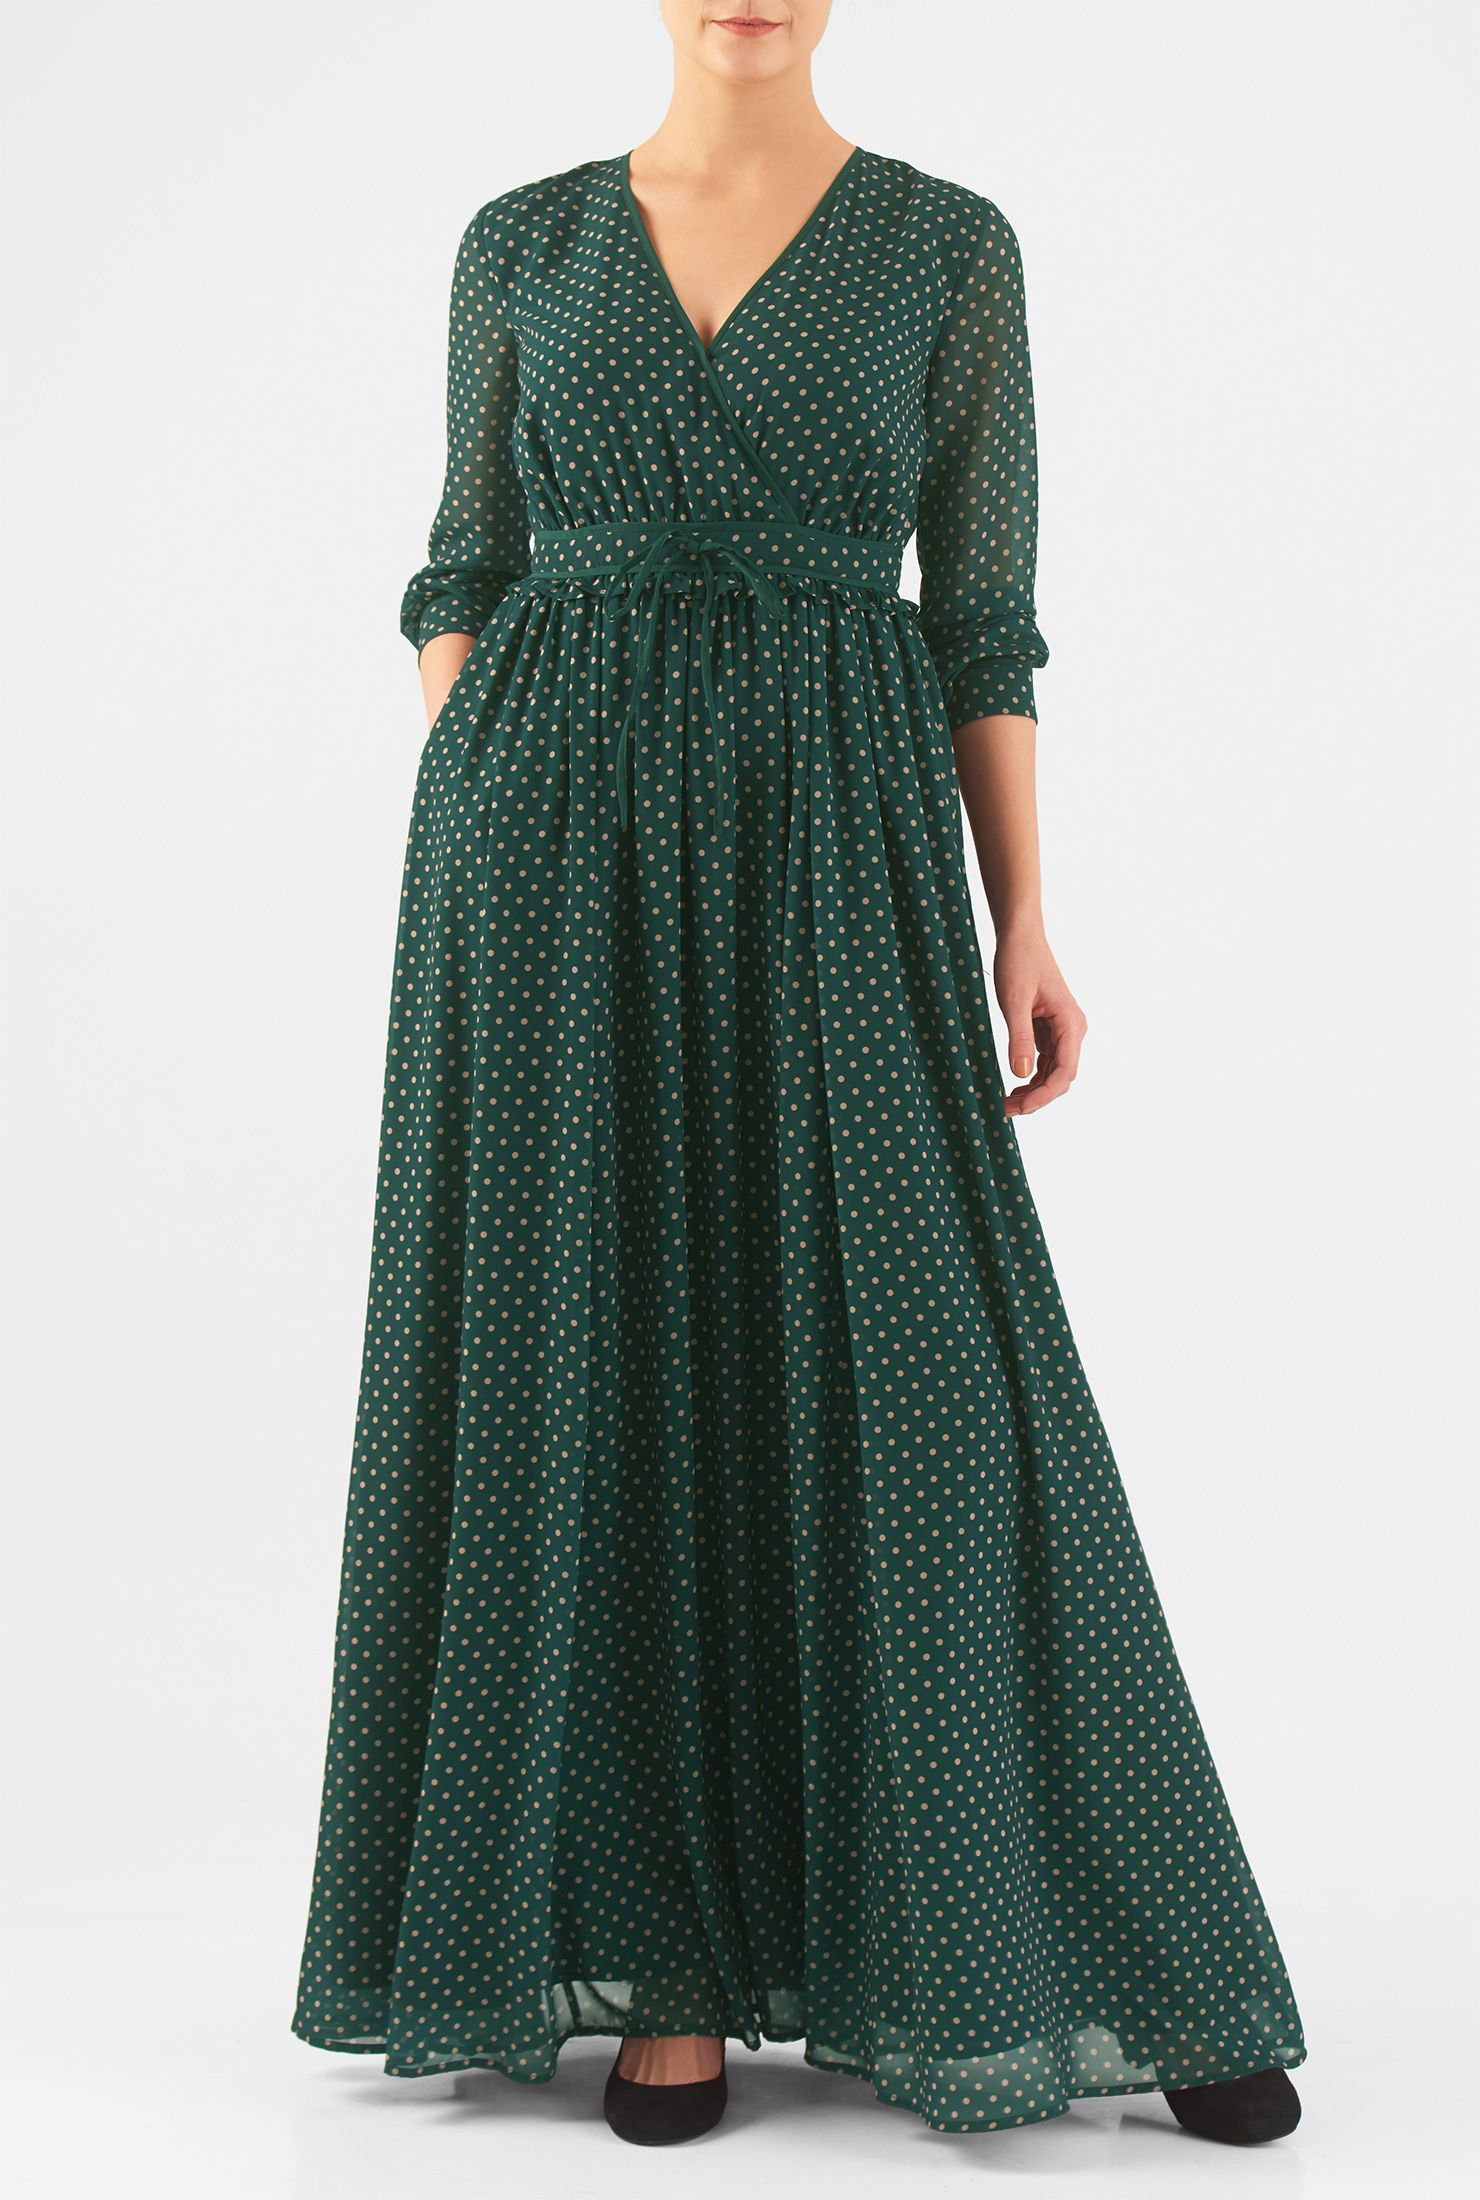 Our polka dot georgette dress is cut at floor length with a flirty